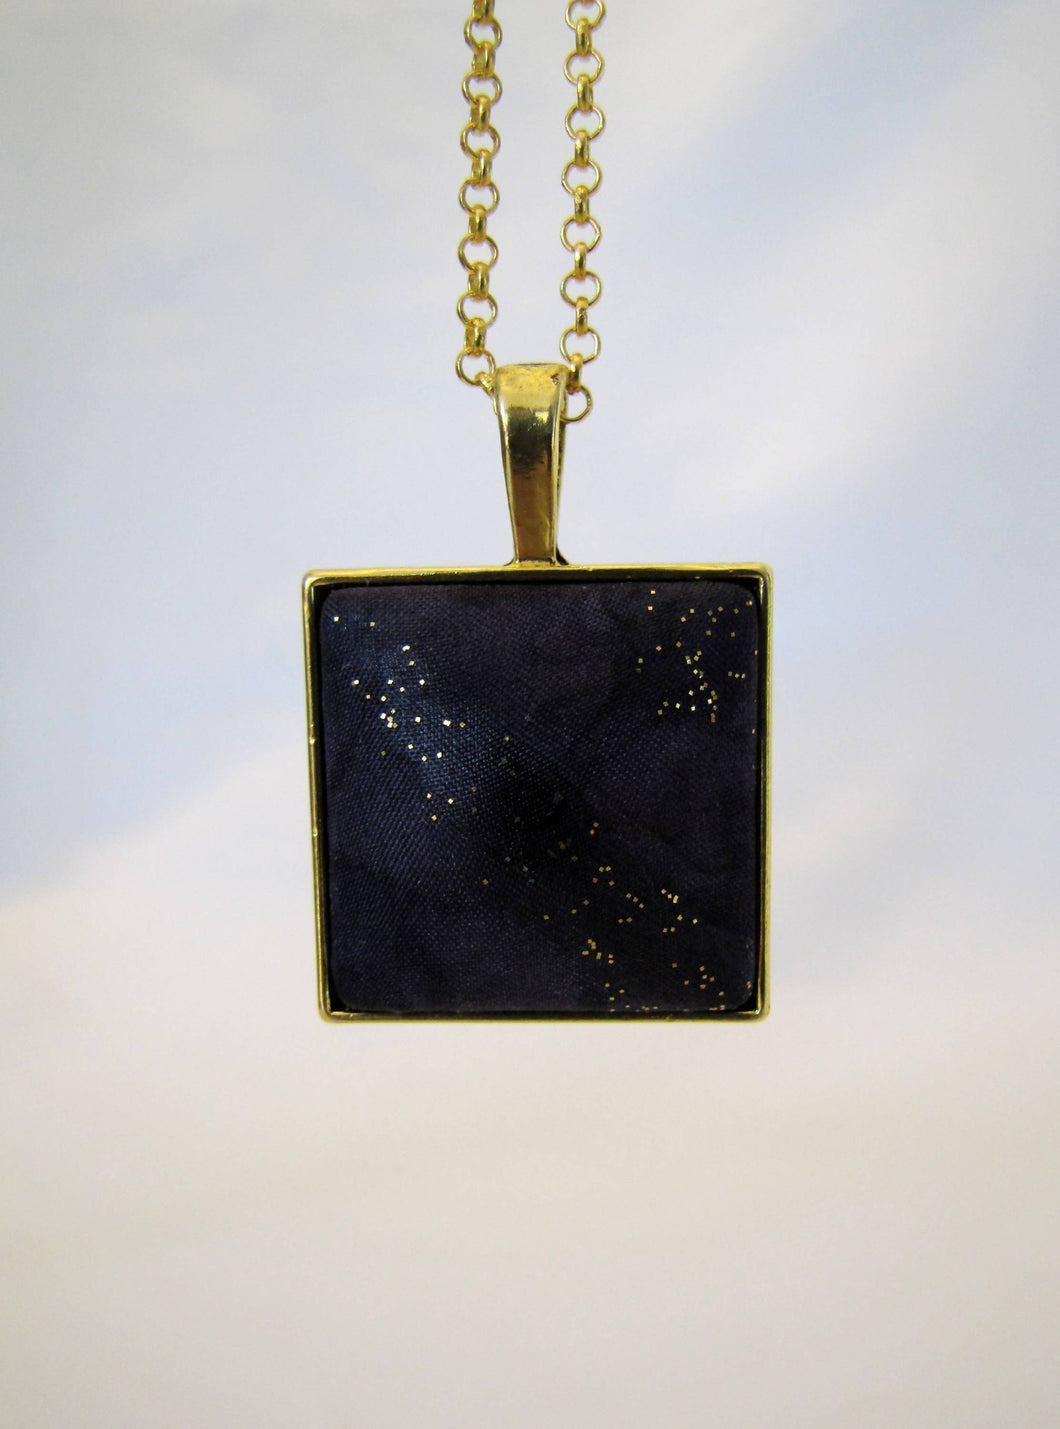 Black Silk Pendant Necklace, Hand-Painted Dark Purple Gold Woman's Mother's Day Birthday Gift, Made in USA